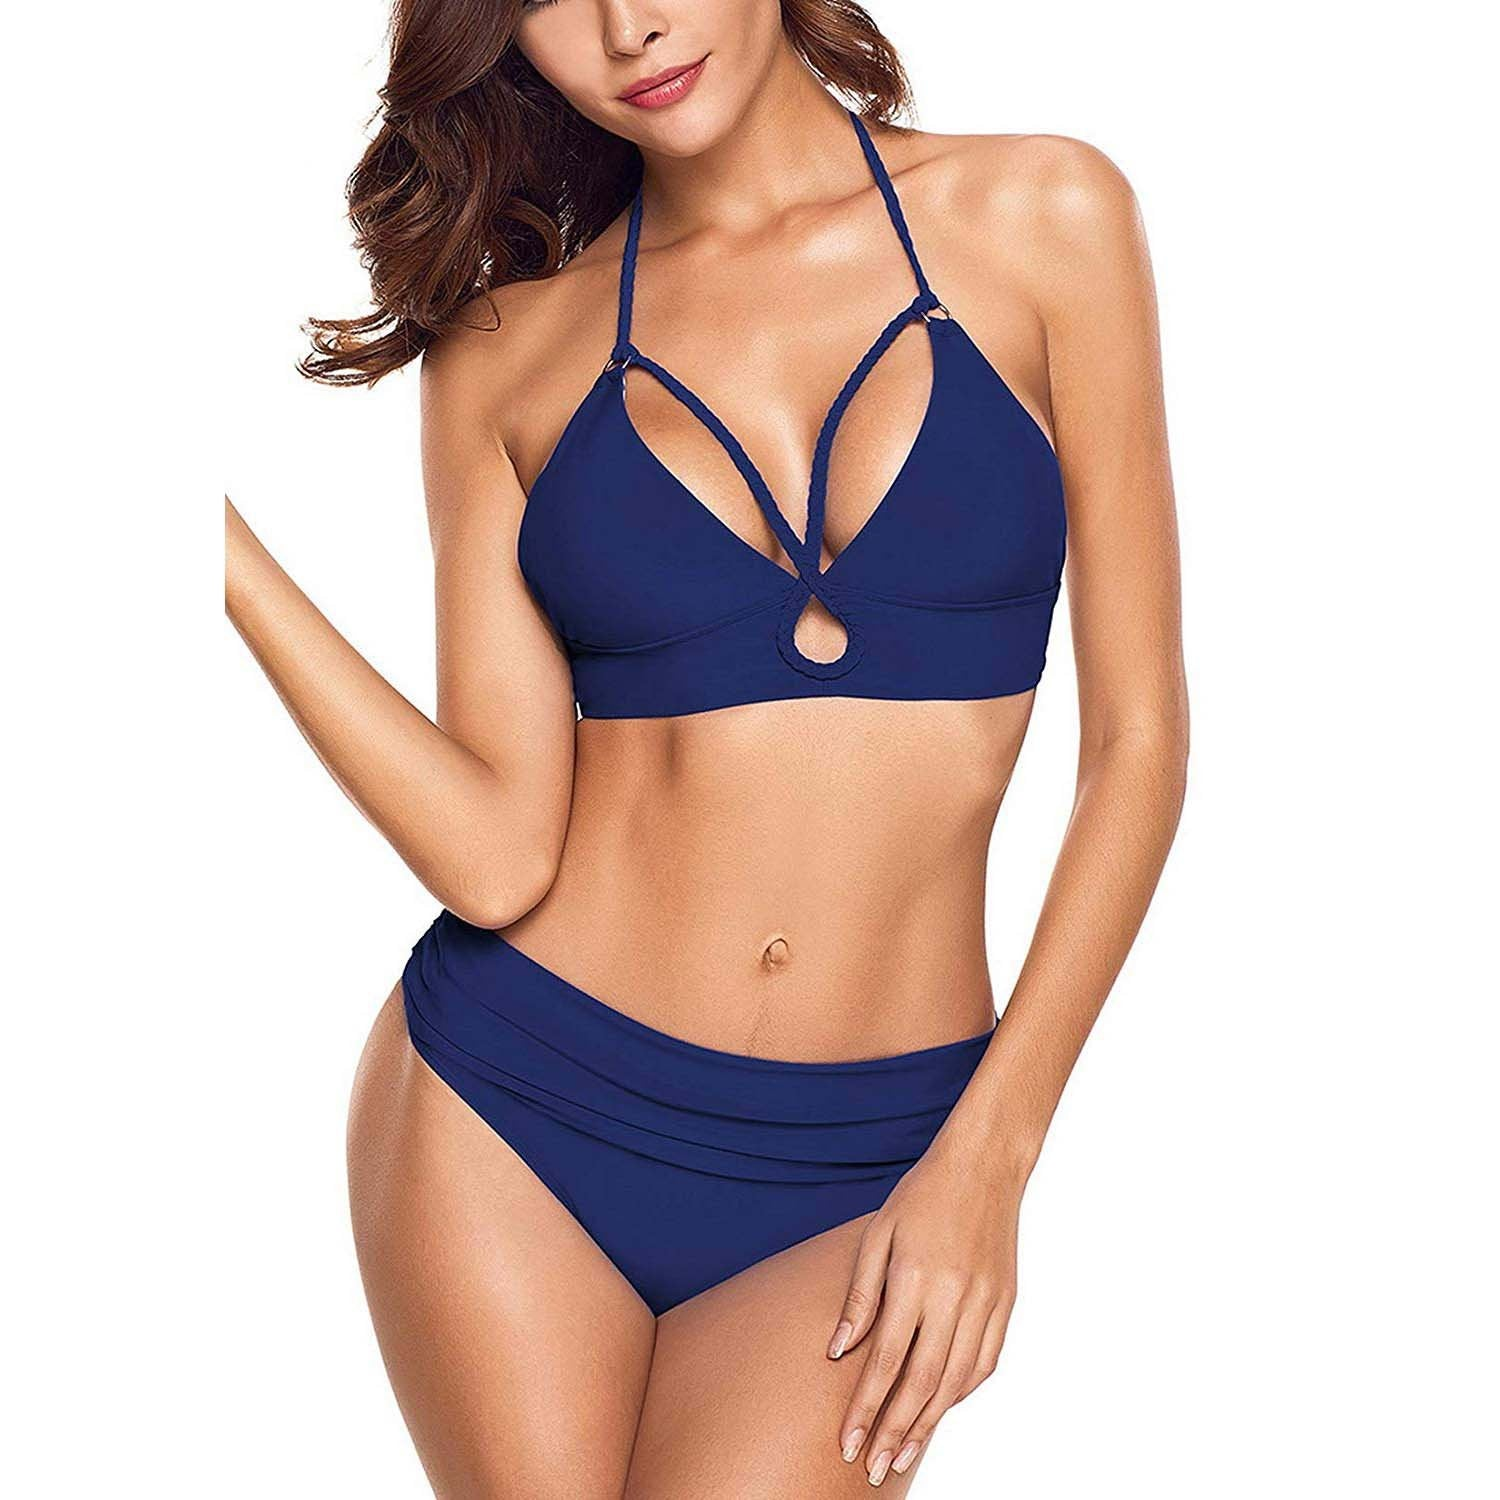 classic fit latest selection of 2019 exceptional range of styles and colors Geek Lighting Women Girls 2 Piece Swimsuits High Waisted ...